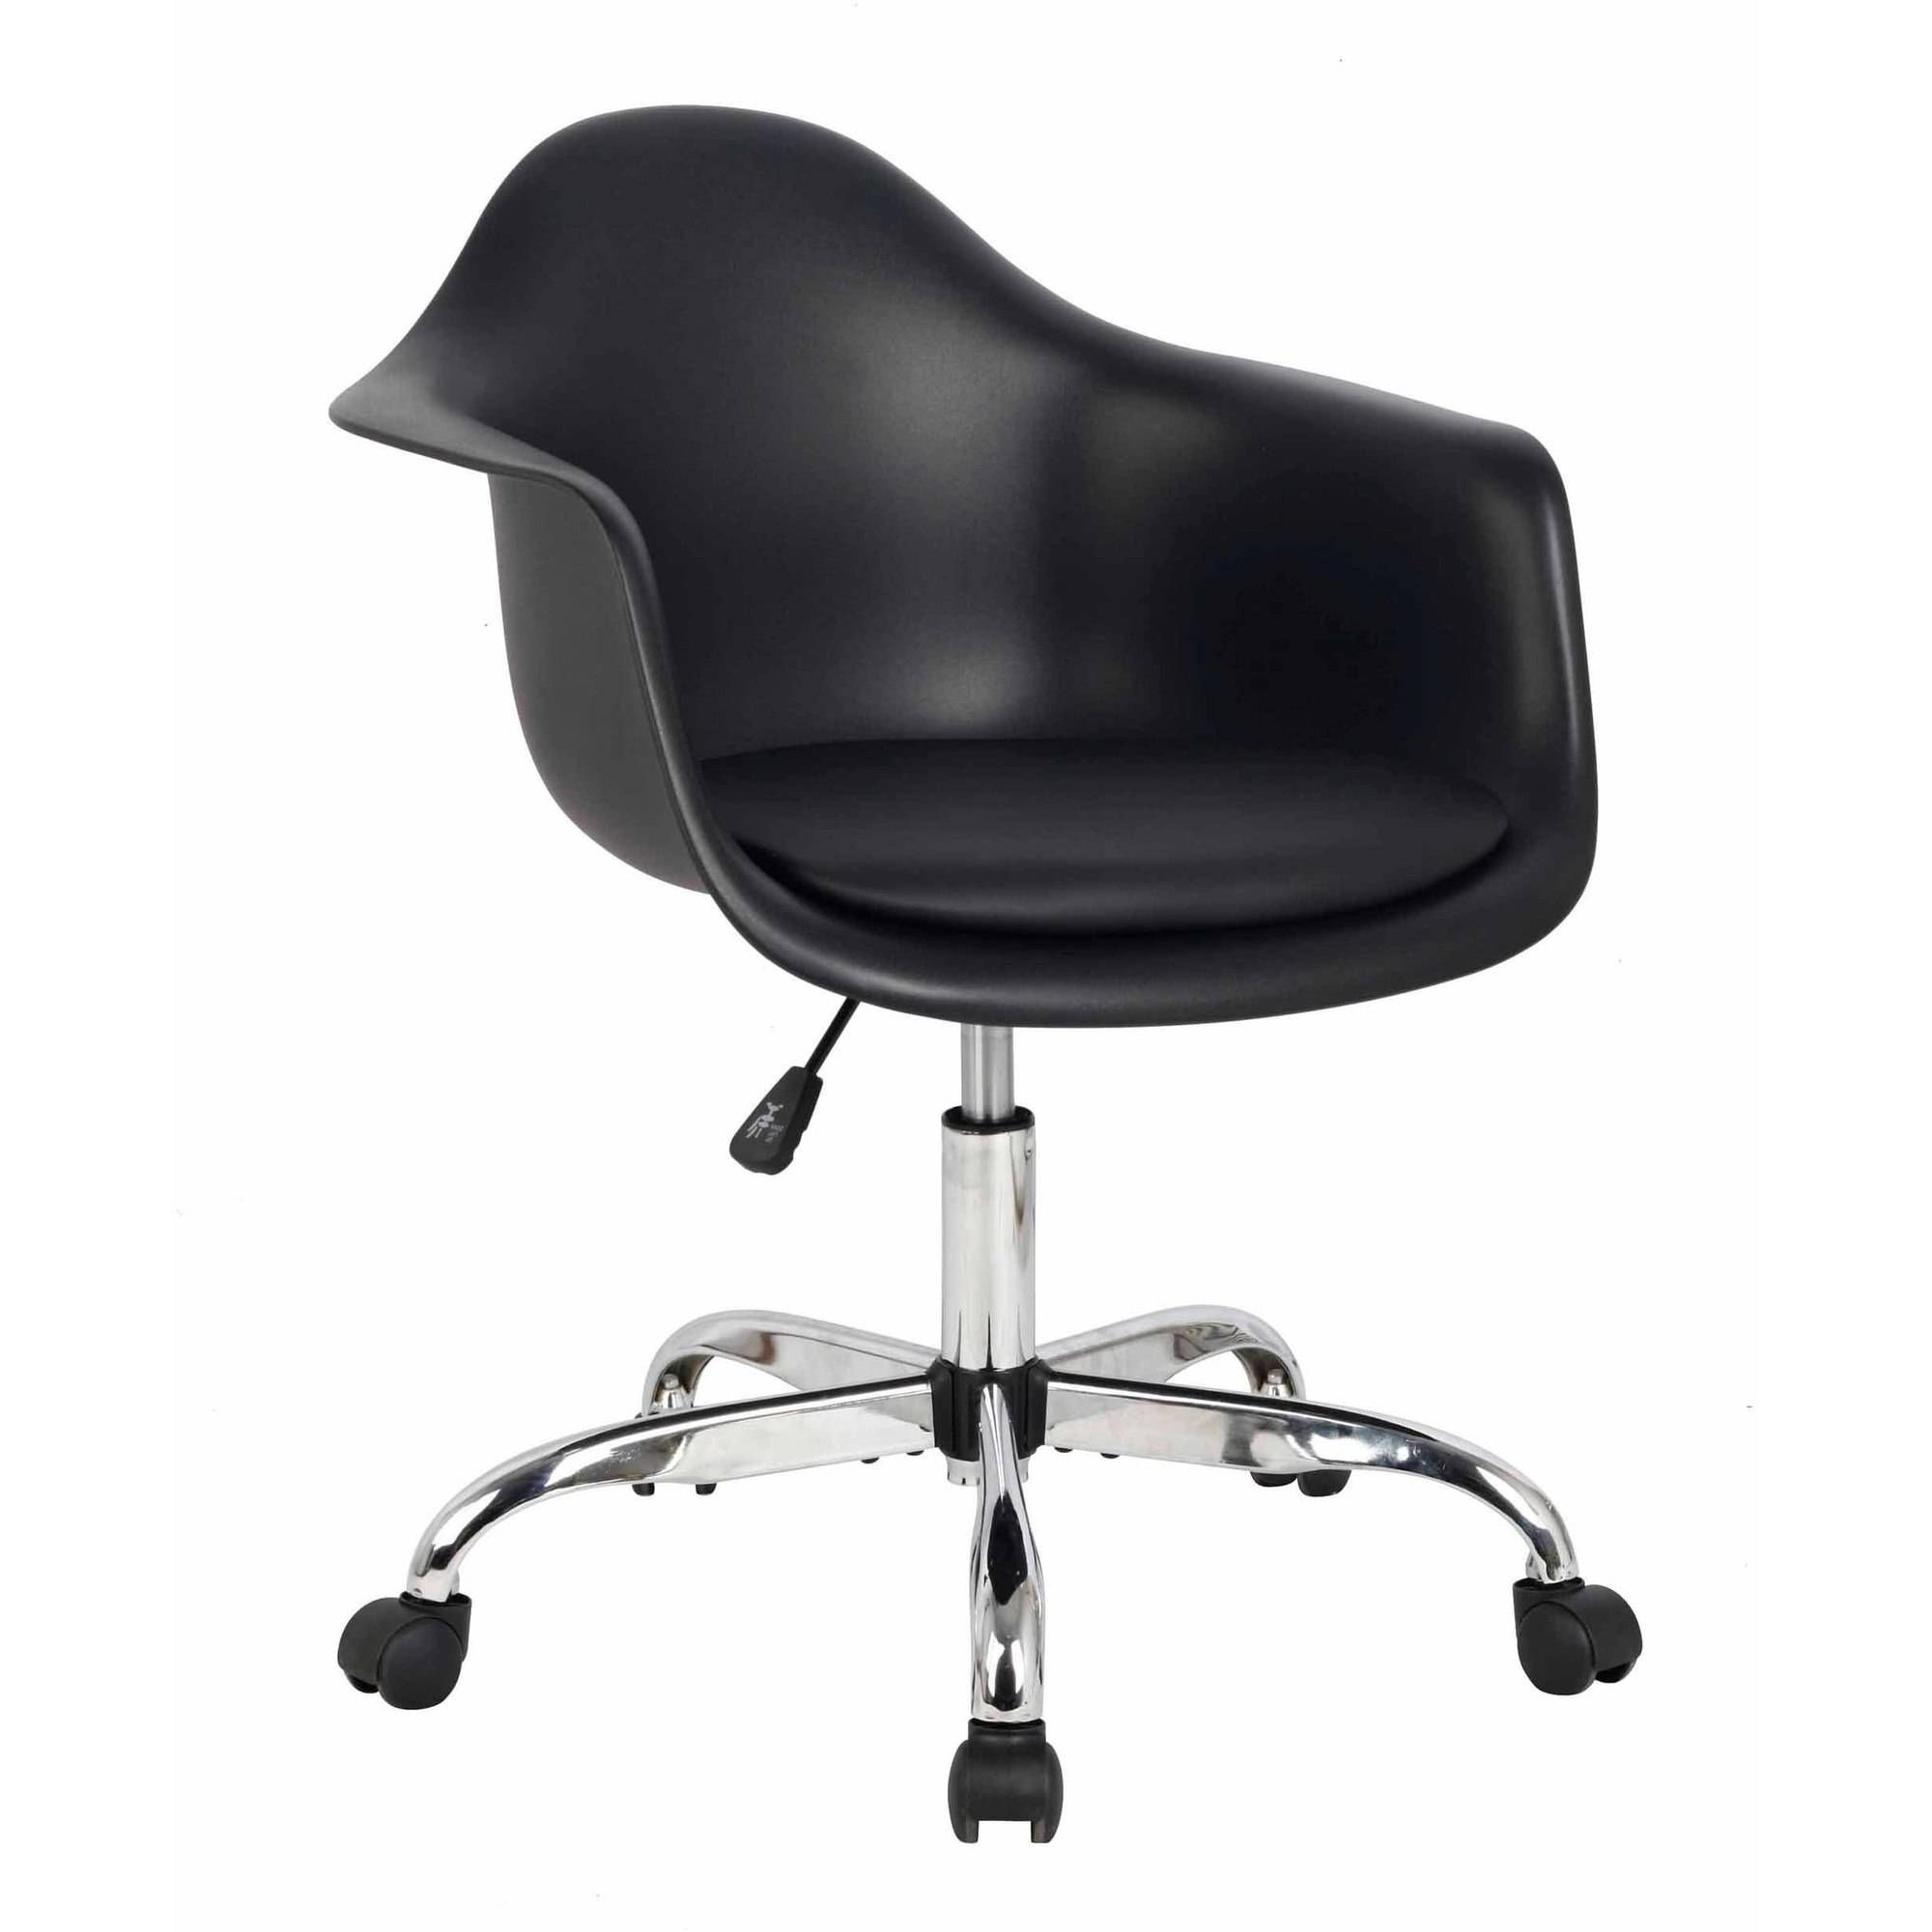 Home Rolling chair, Office chair, Bucket chairs